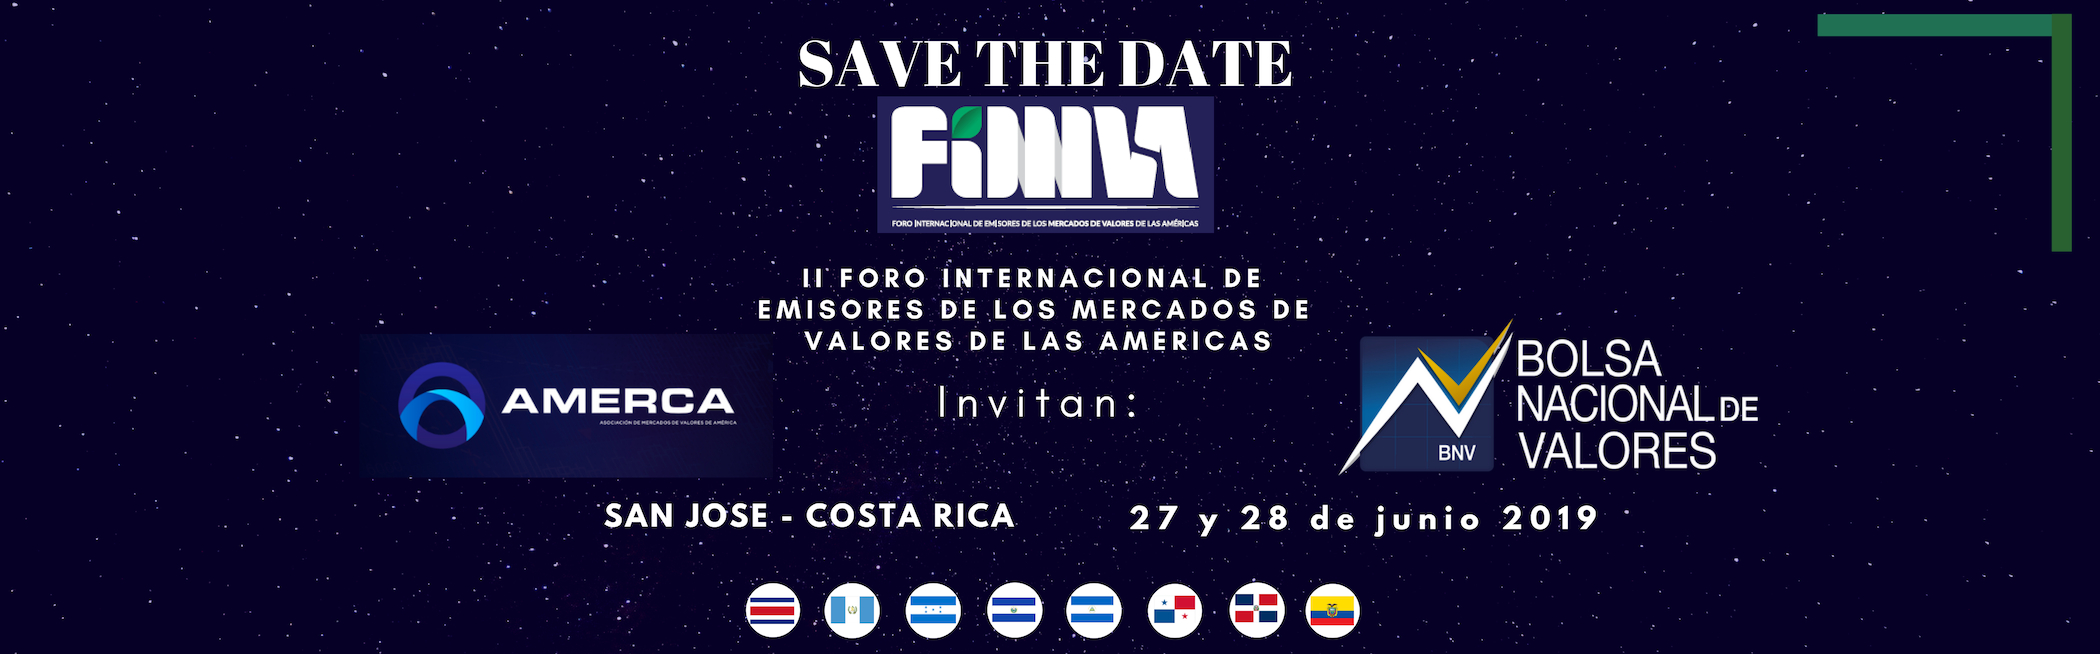 Copia de SAVE THE DATE COSTA RICA